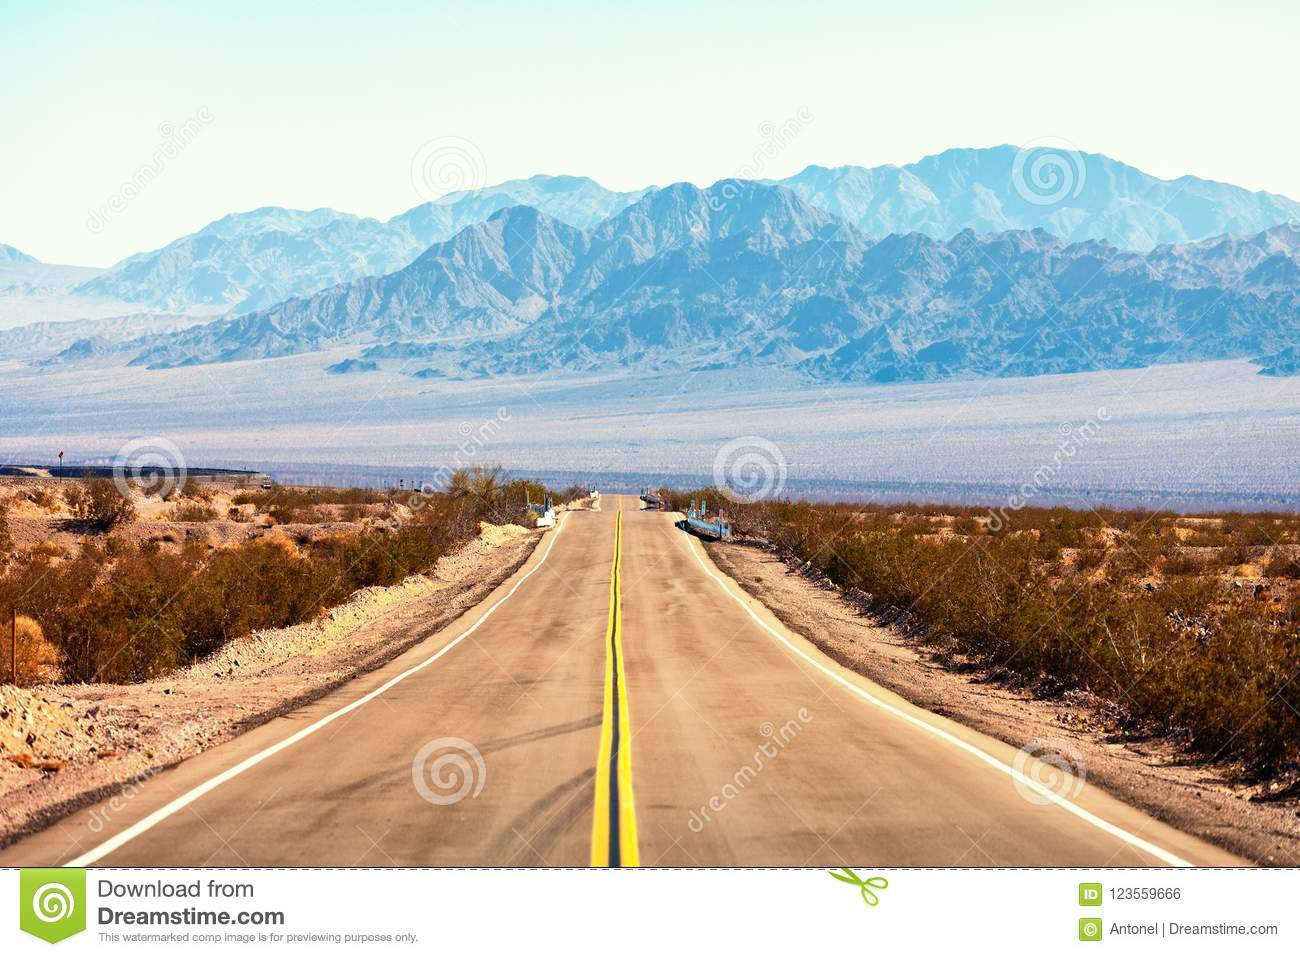 View from the Route 66, Mojave Desert, Southern California, United States